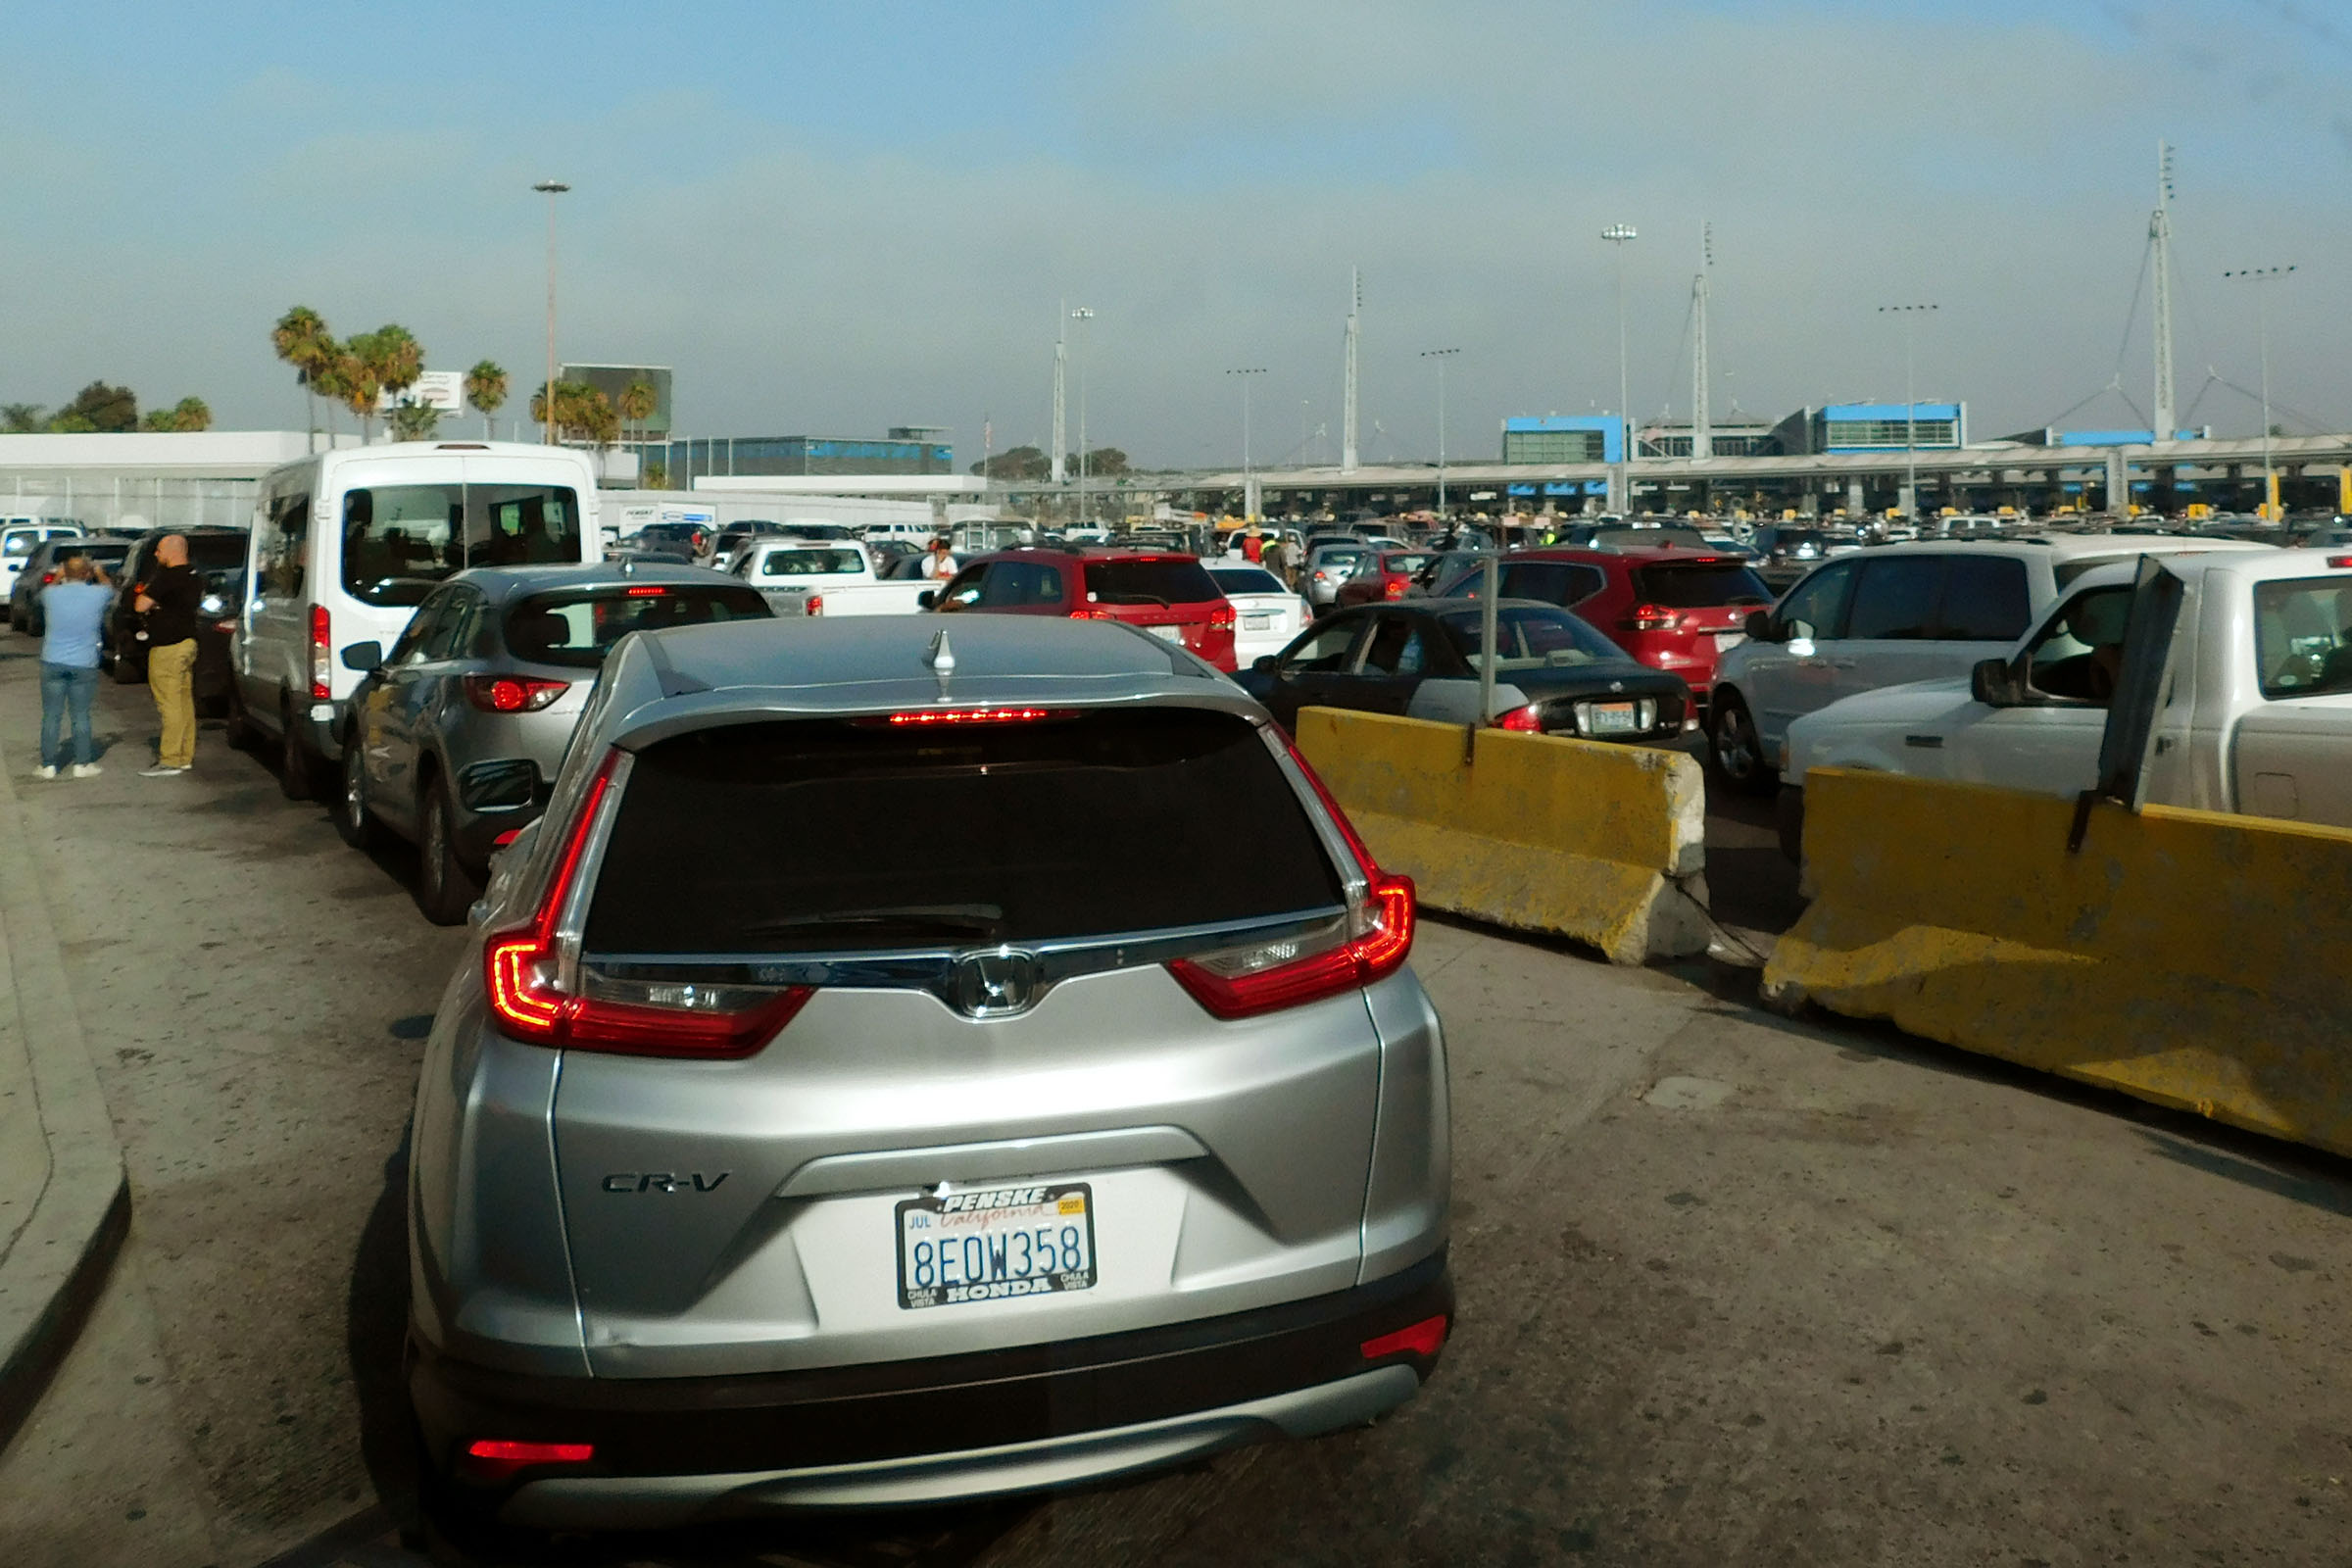 The San Ysidro border crossing, between San Diego and Tijuana, Mexico